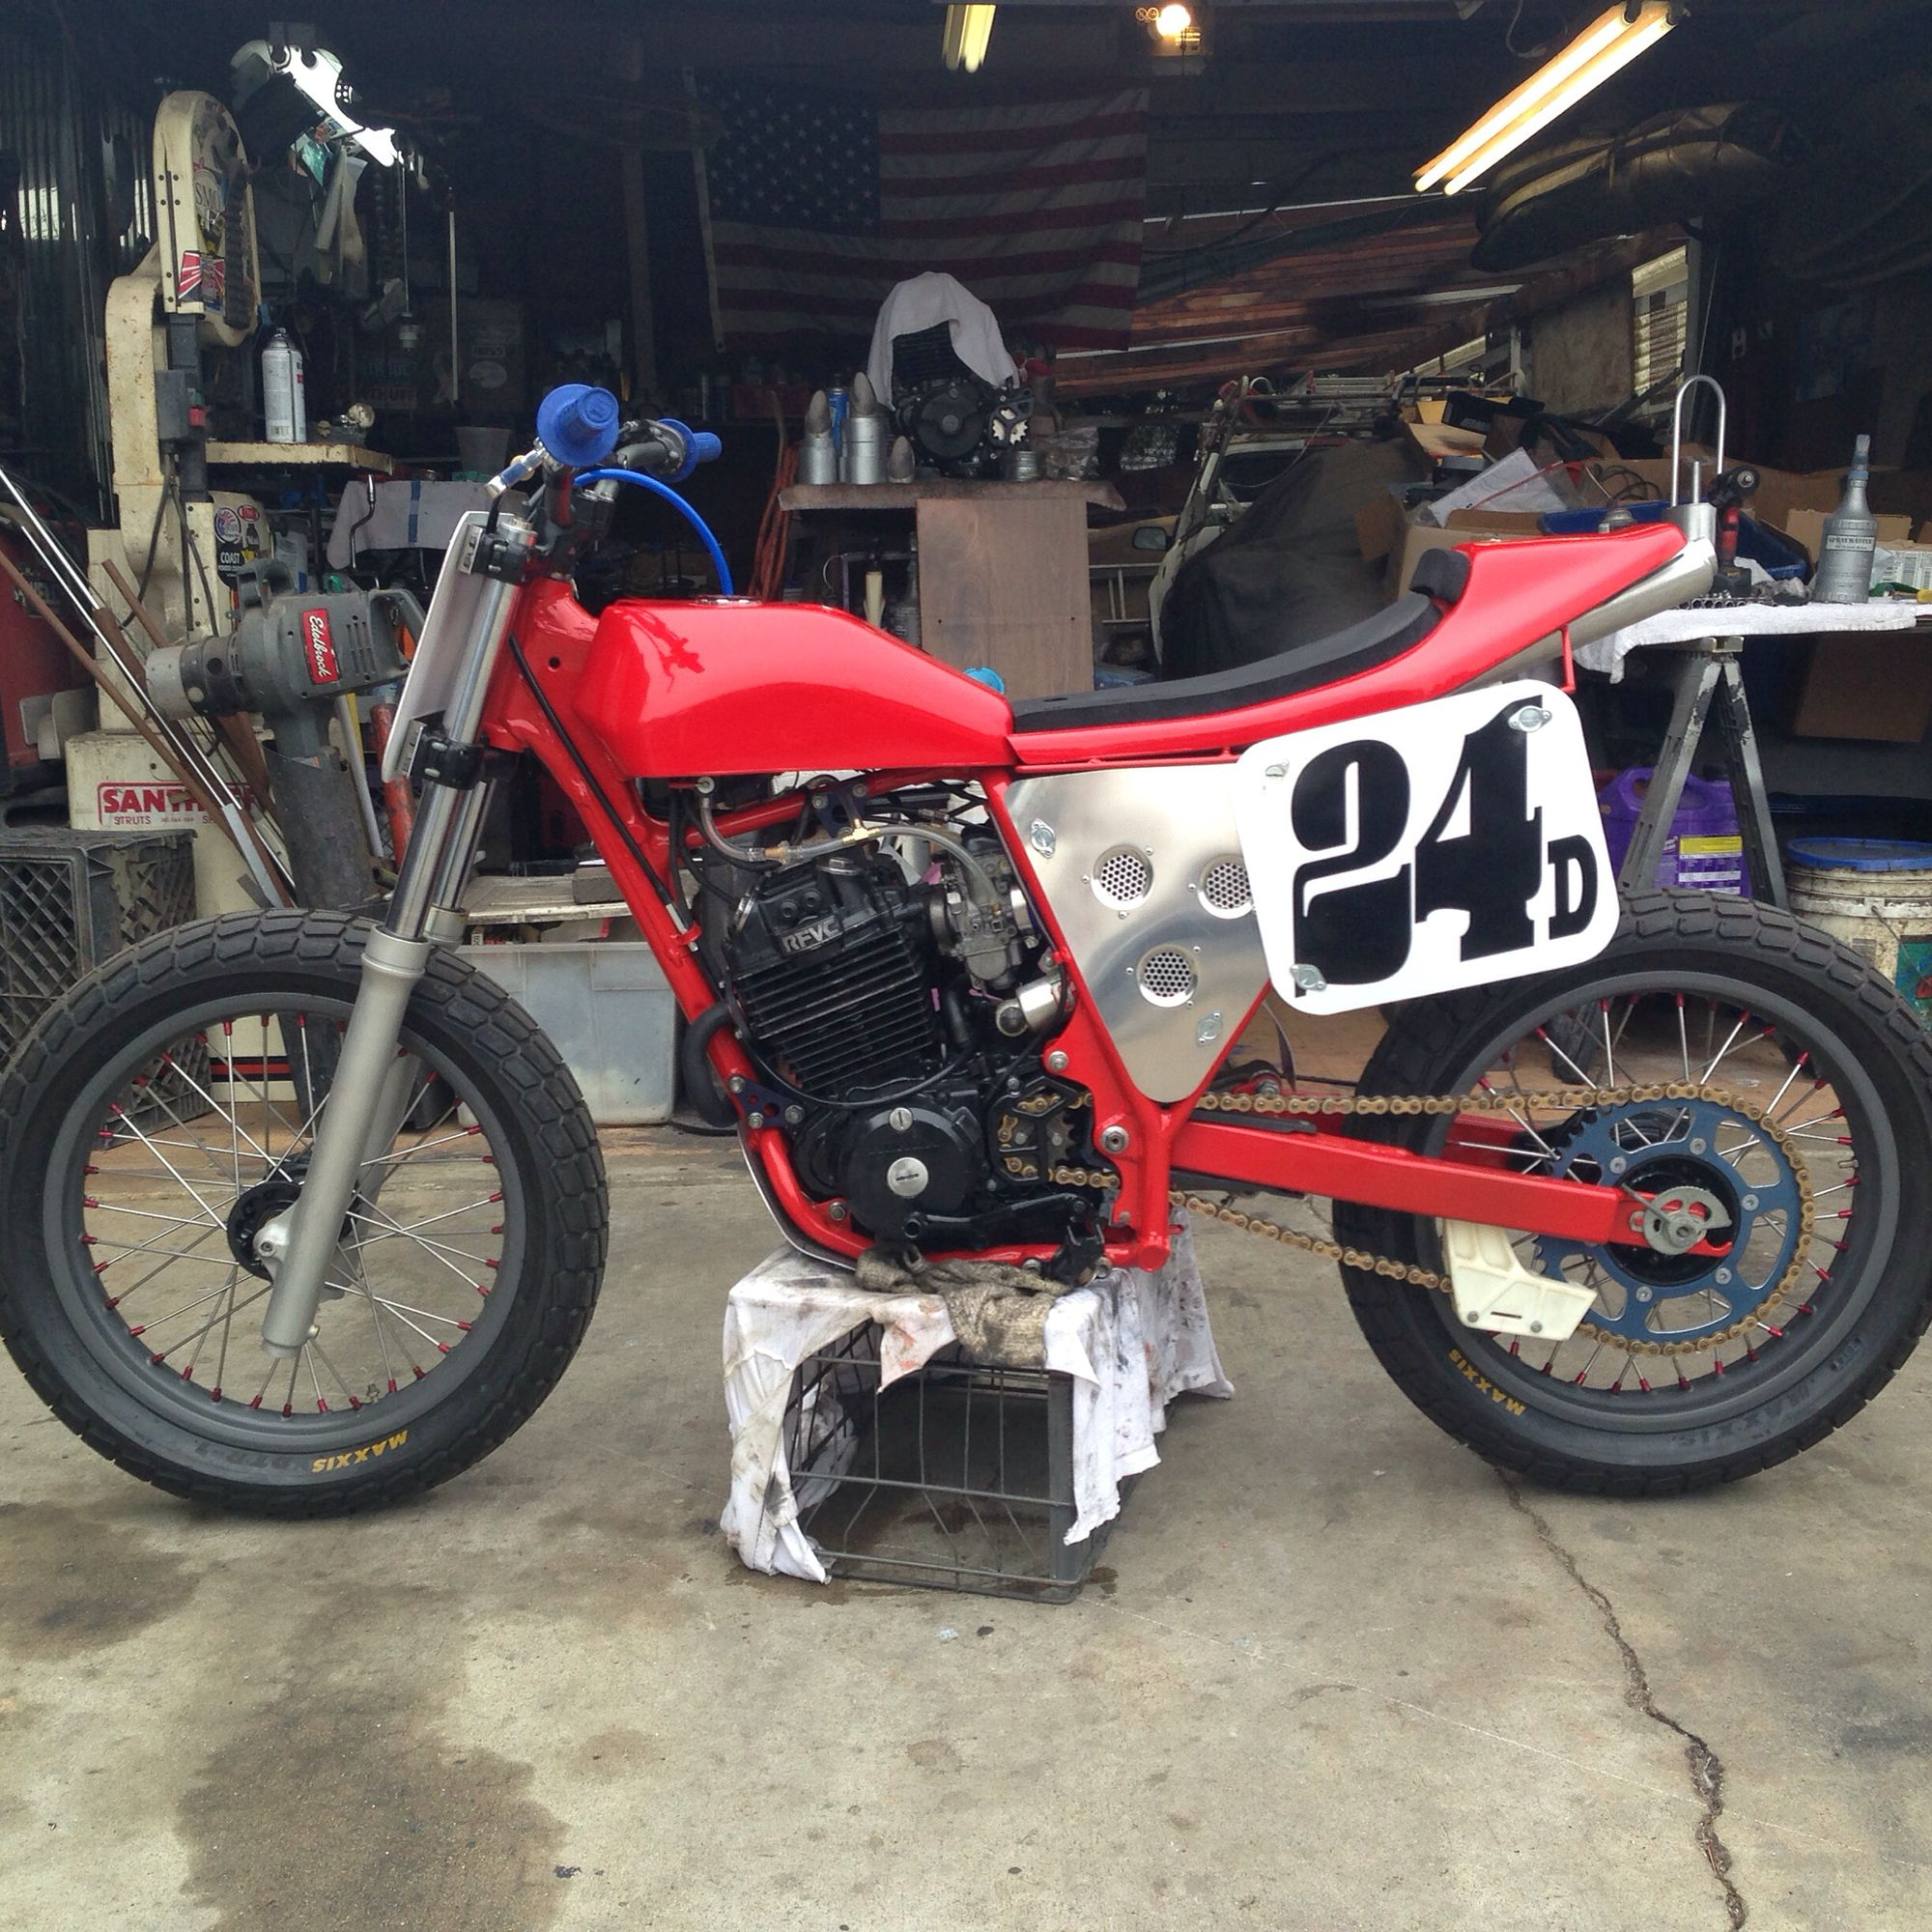 Xr200 dirt tracker xr200 dirt tracker pinterest honda and bike